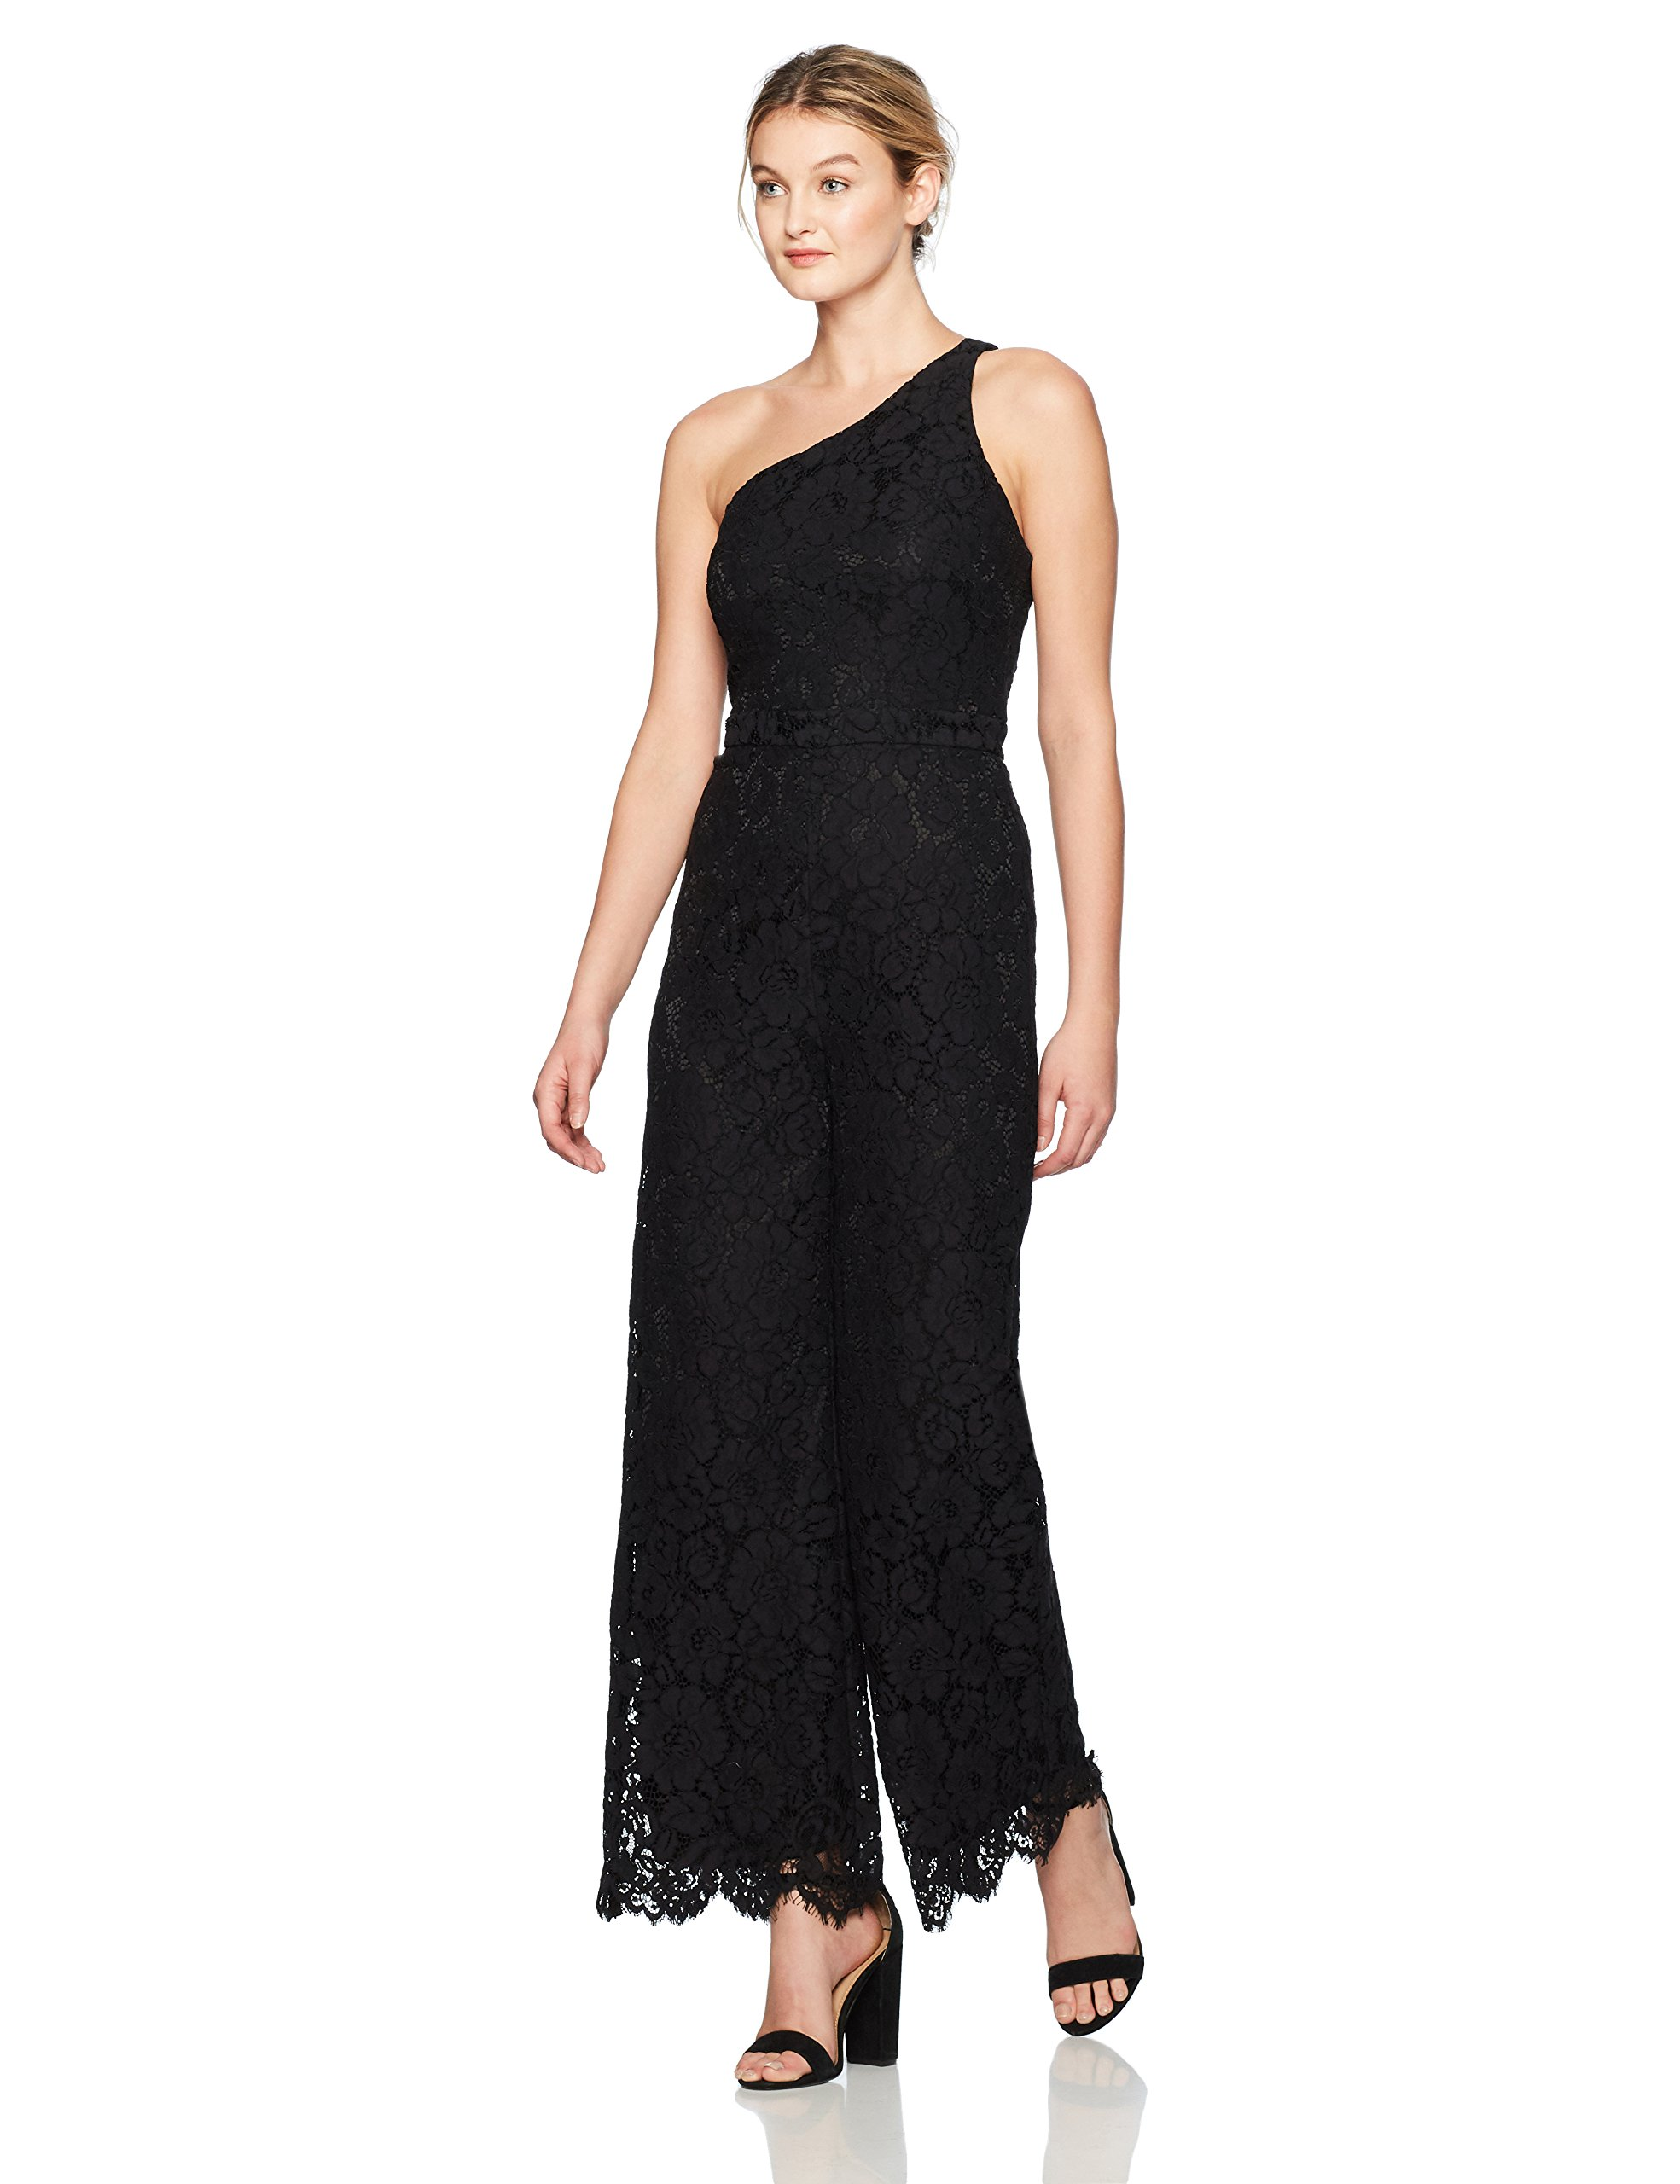 laundry BY SHELLI SEGAL Women's One Shoulder Lace Jumpsuit, Black, 10